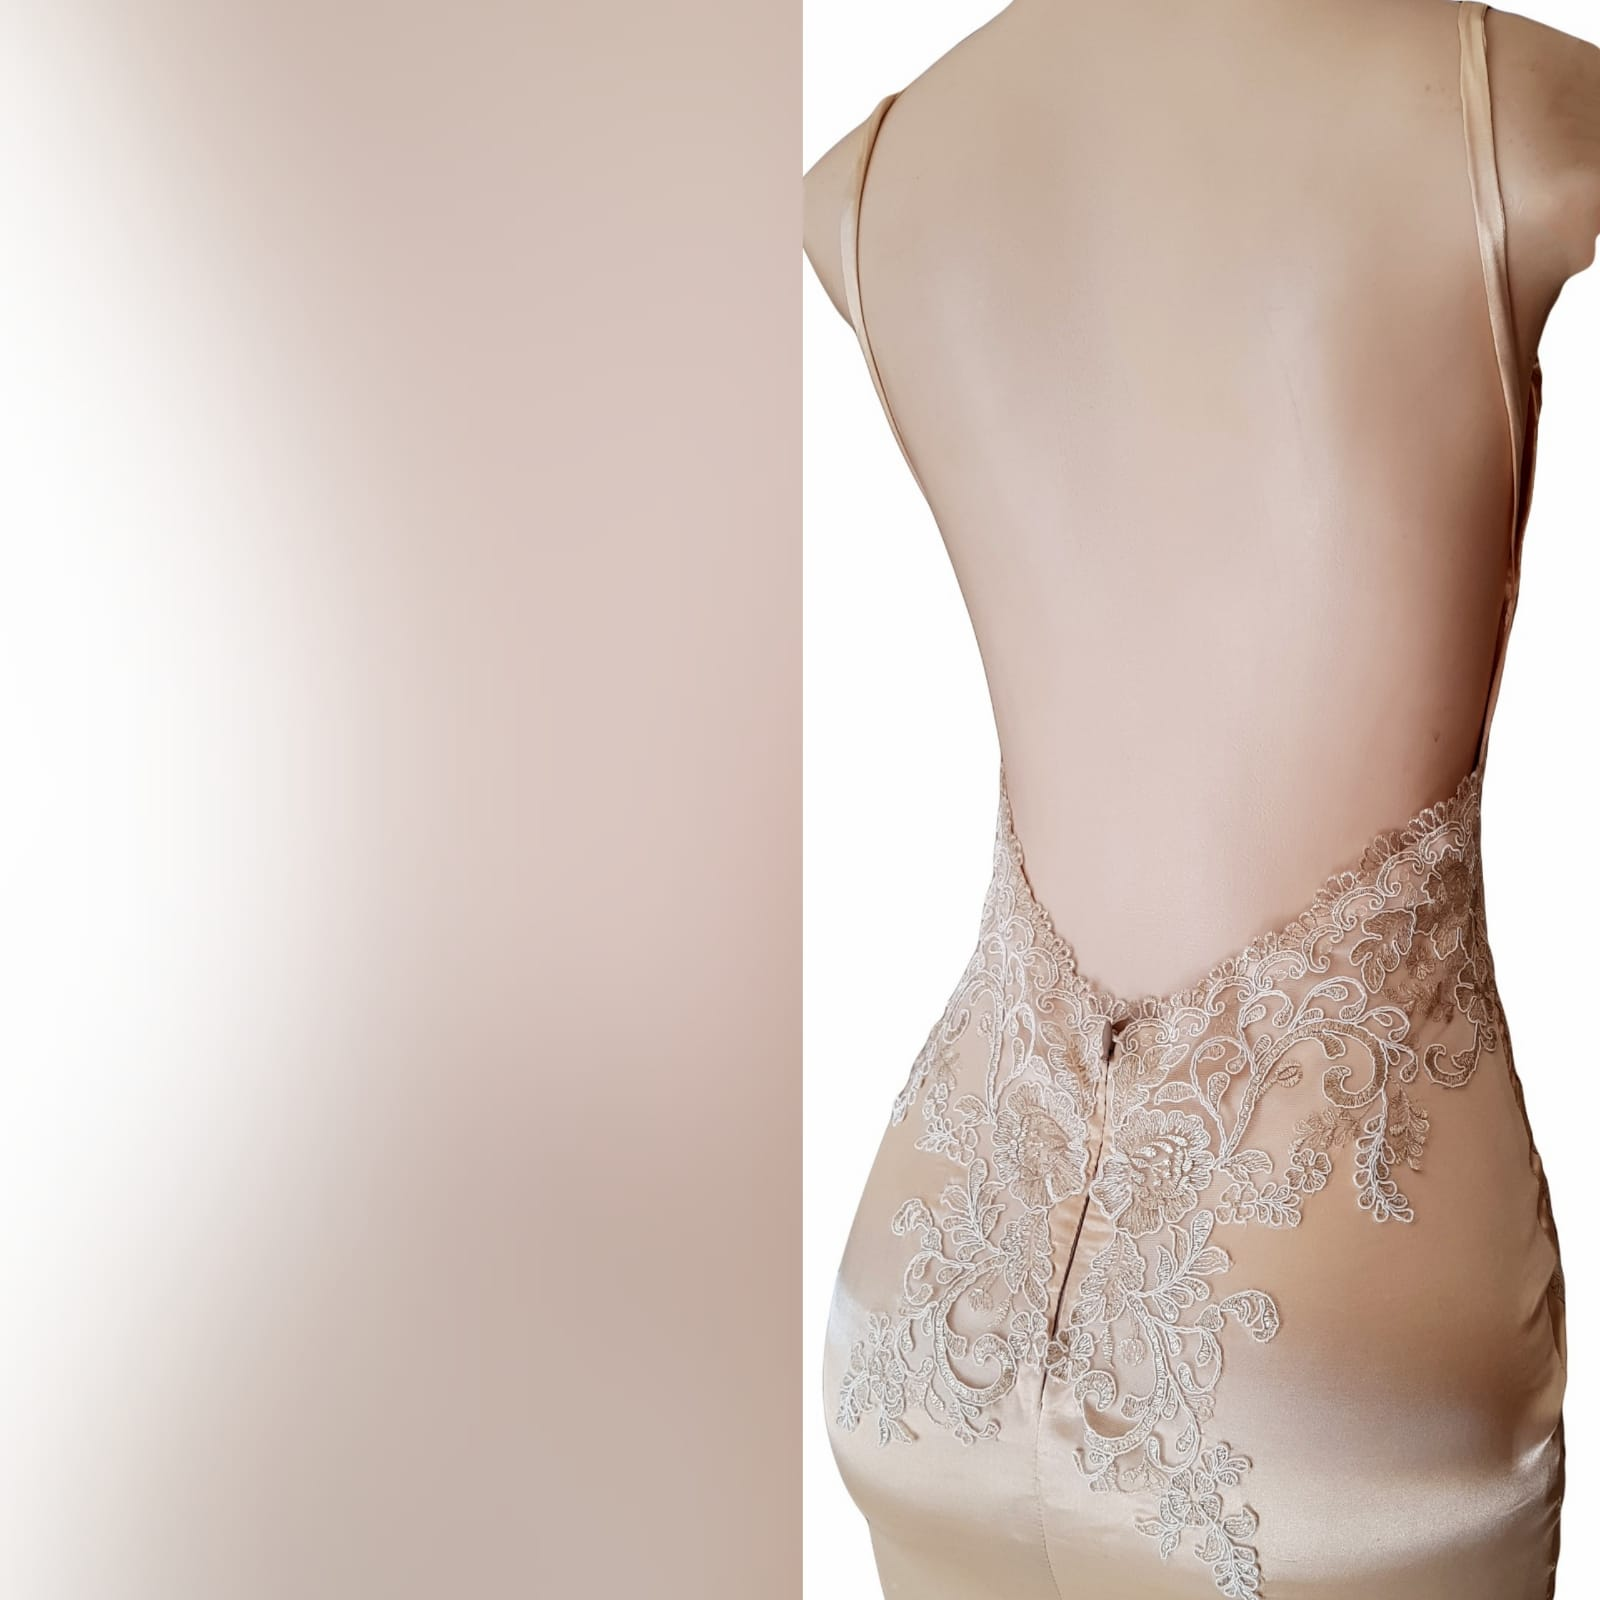 Gold satin soft mermaid matric farewell dress 6 gold satin soft mermaid matric farewell dress with a v neckline, a naked back and long train. Bodice hips and back detailed with lace.